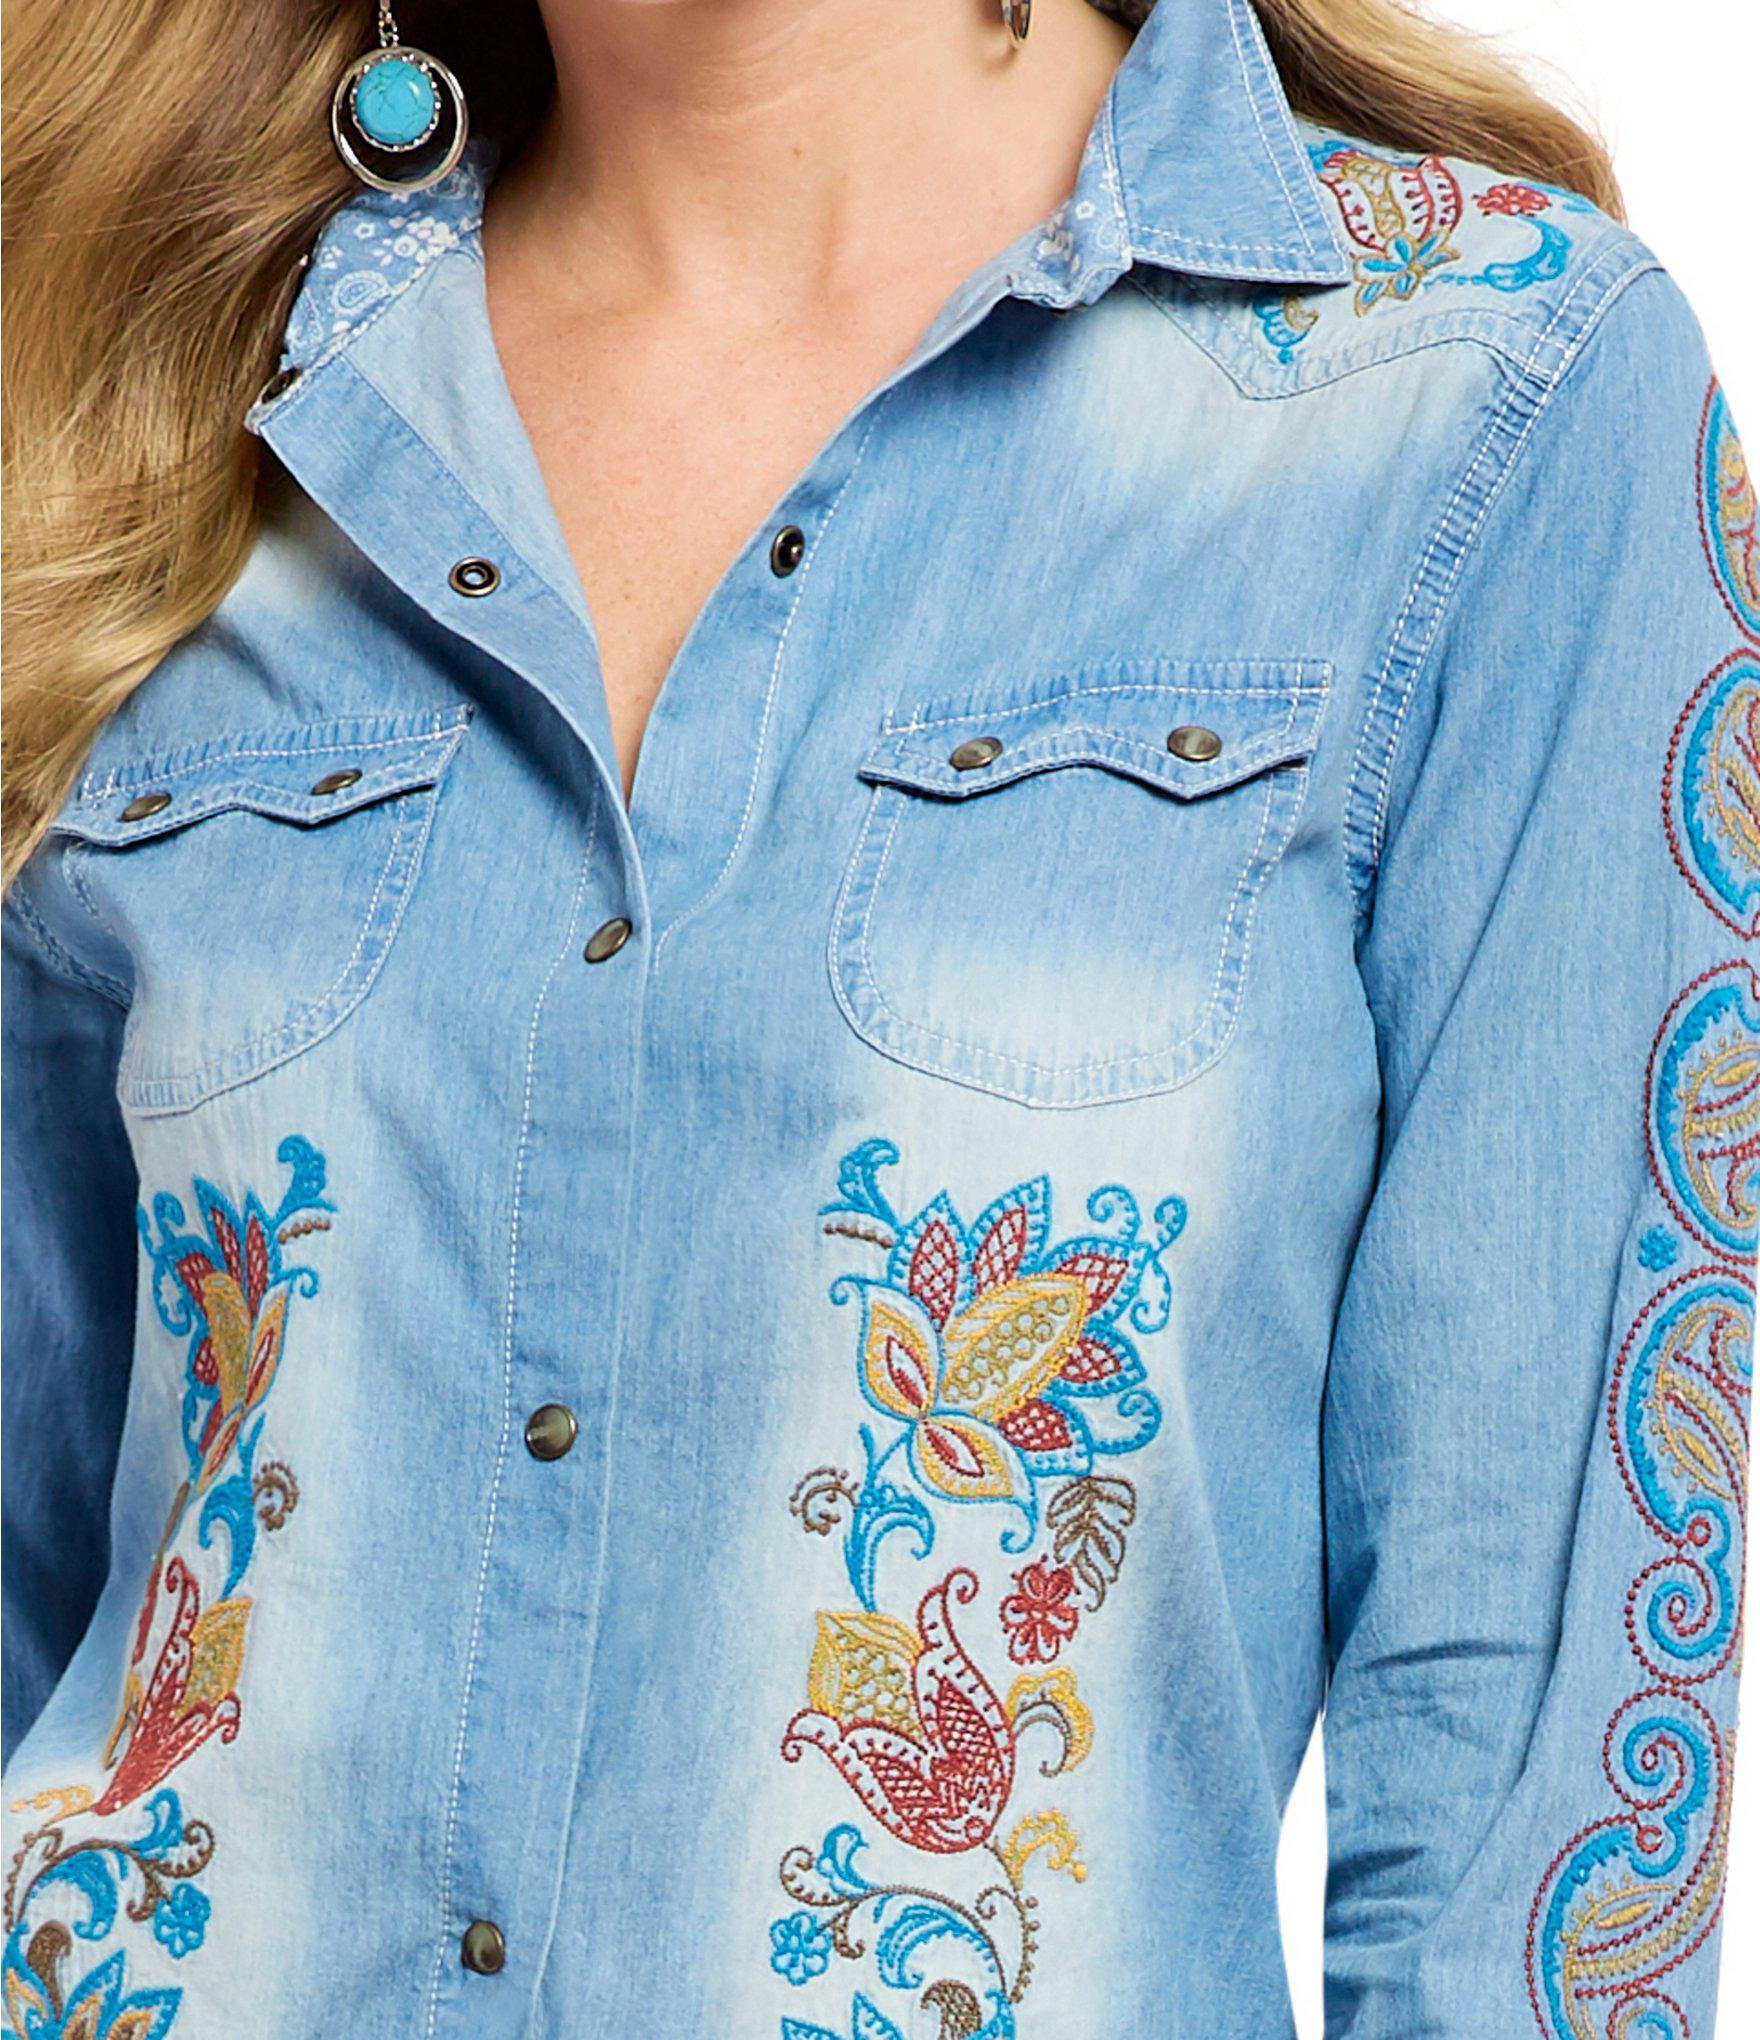 7465e0177d3 Tasha Polizzi - Blue Denim Snap Front Embroidered Billie Shirt - Lyst. View  fullscreen